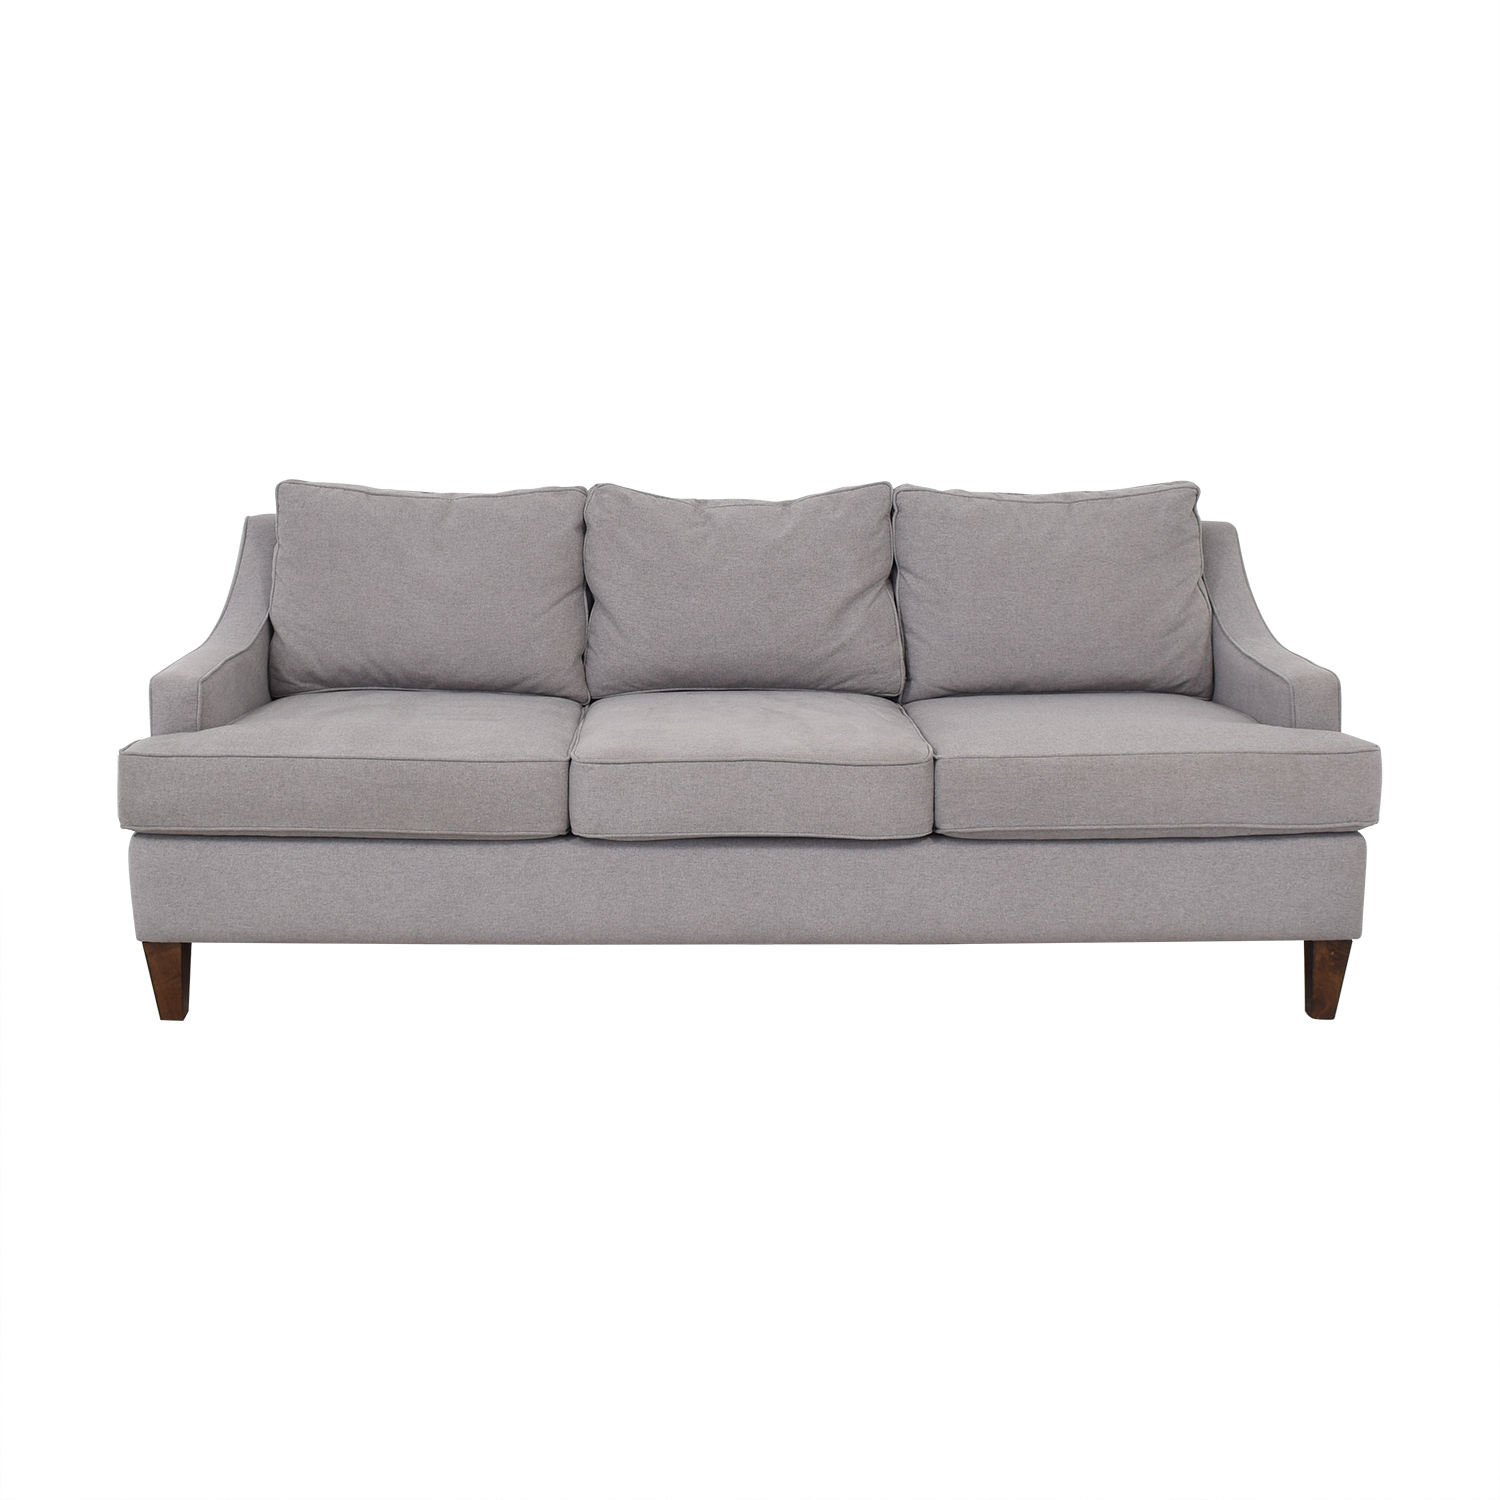 KFI KFI Furniture Three Seat Sofa ma